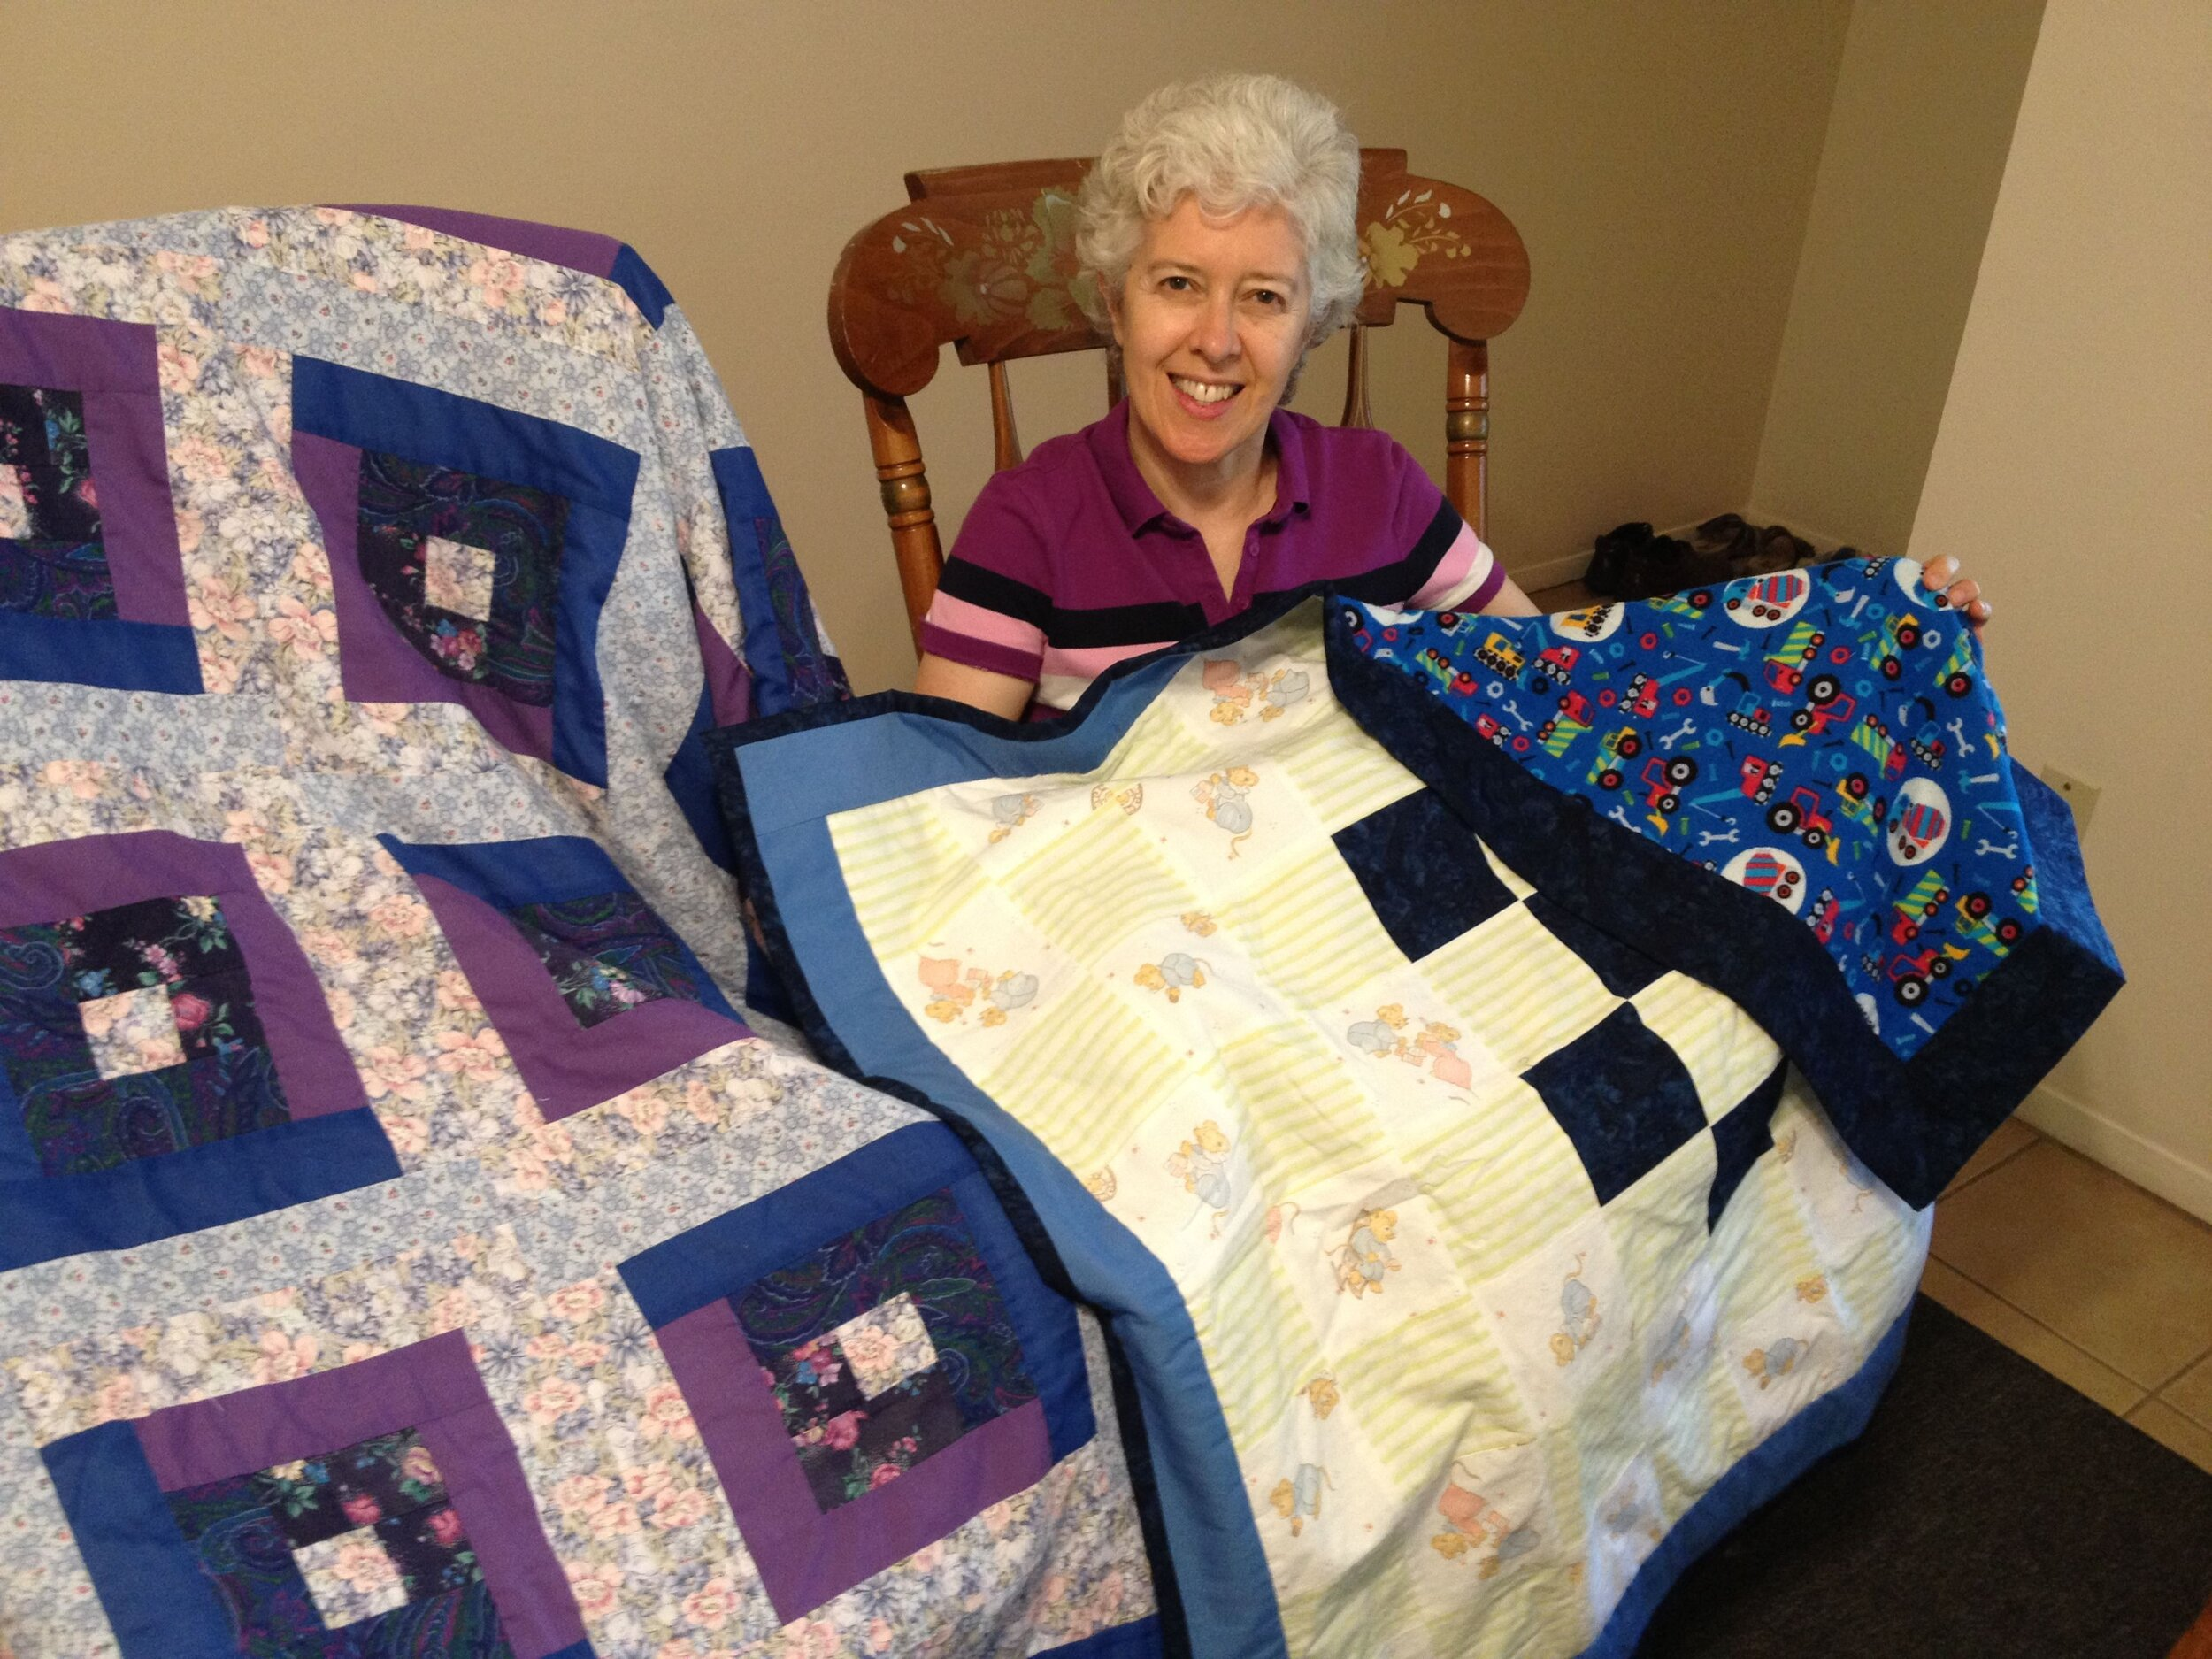 08-Cherie-with-baby-quilts-she-made-compressor.jpg